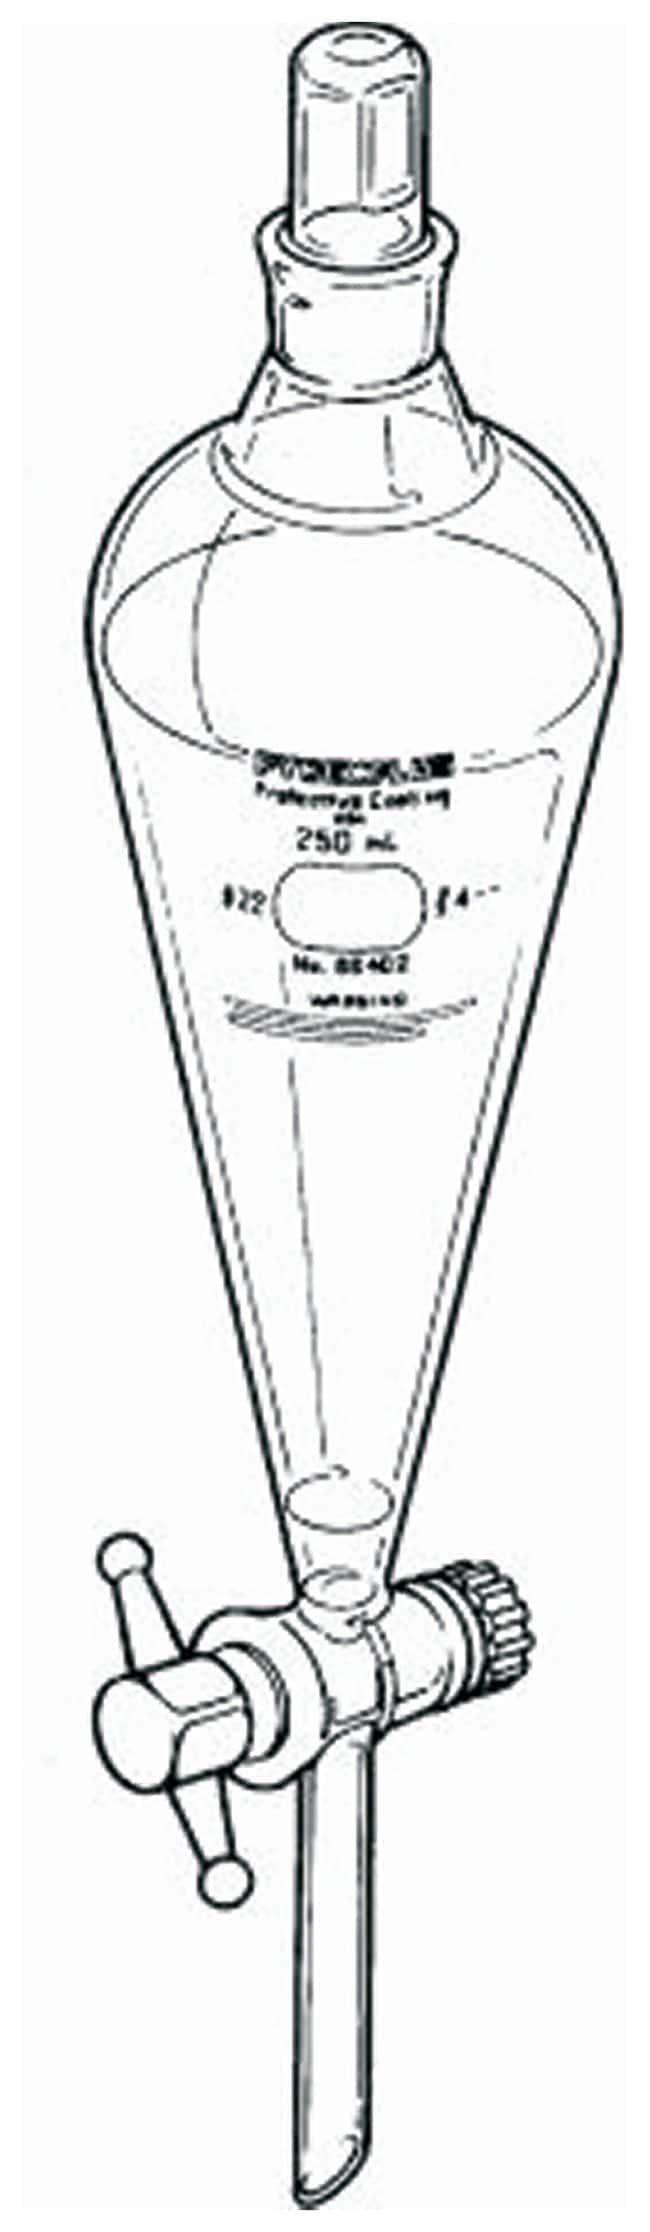 PYREXPLUS Coated Squibb Separatory Funnel with PTFE Standard Stopcock and